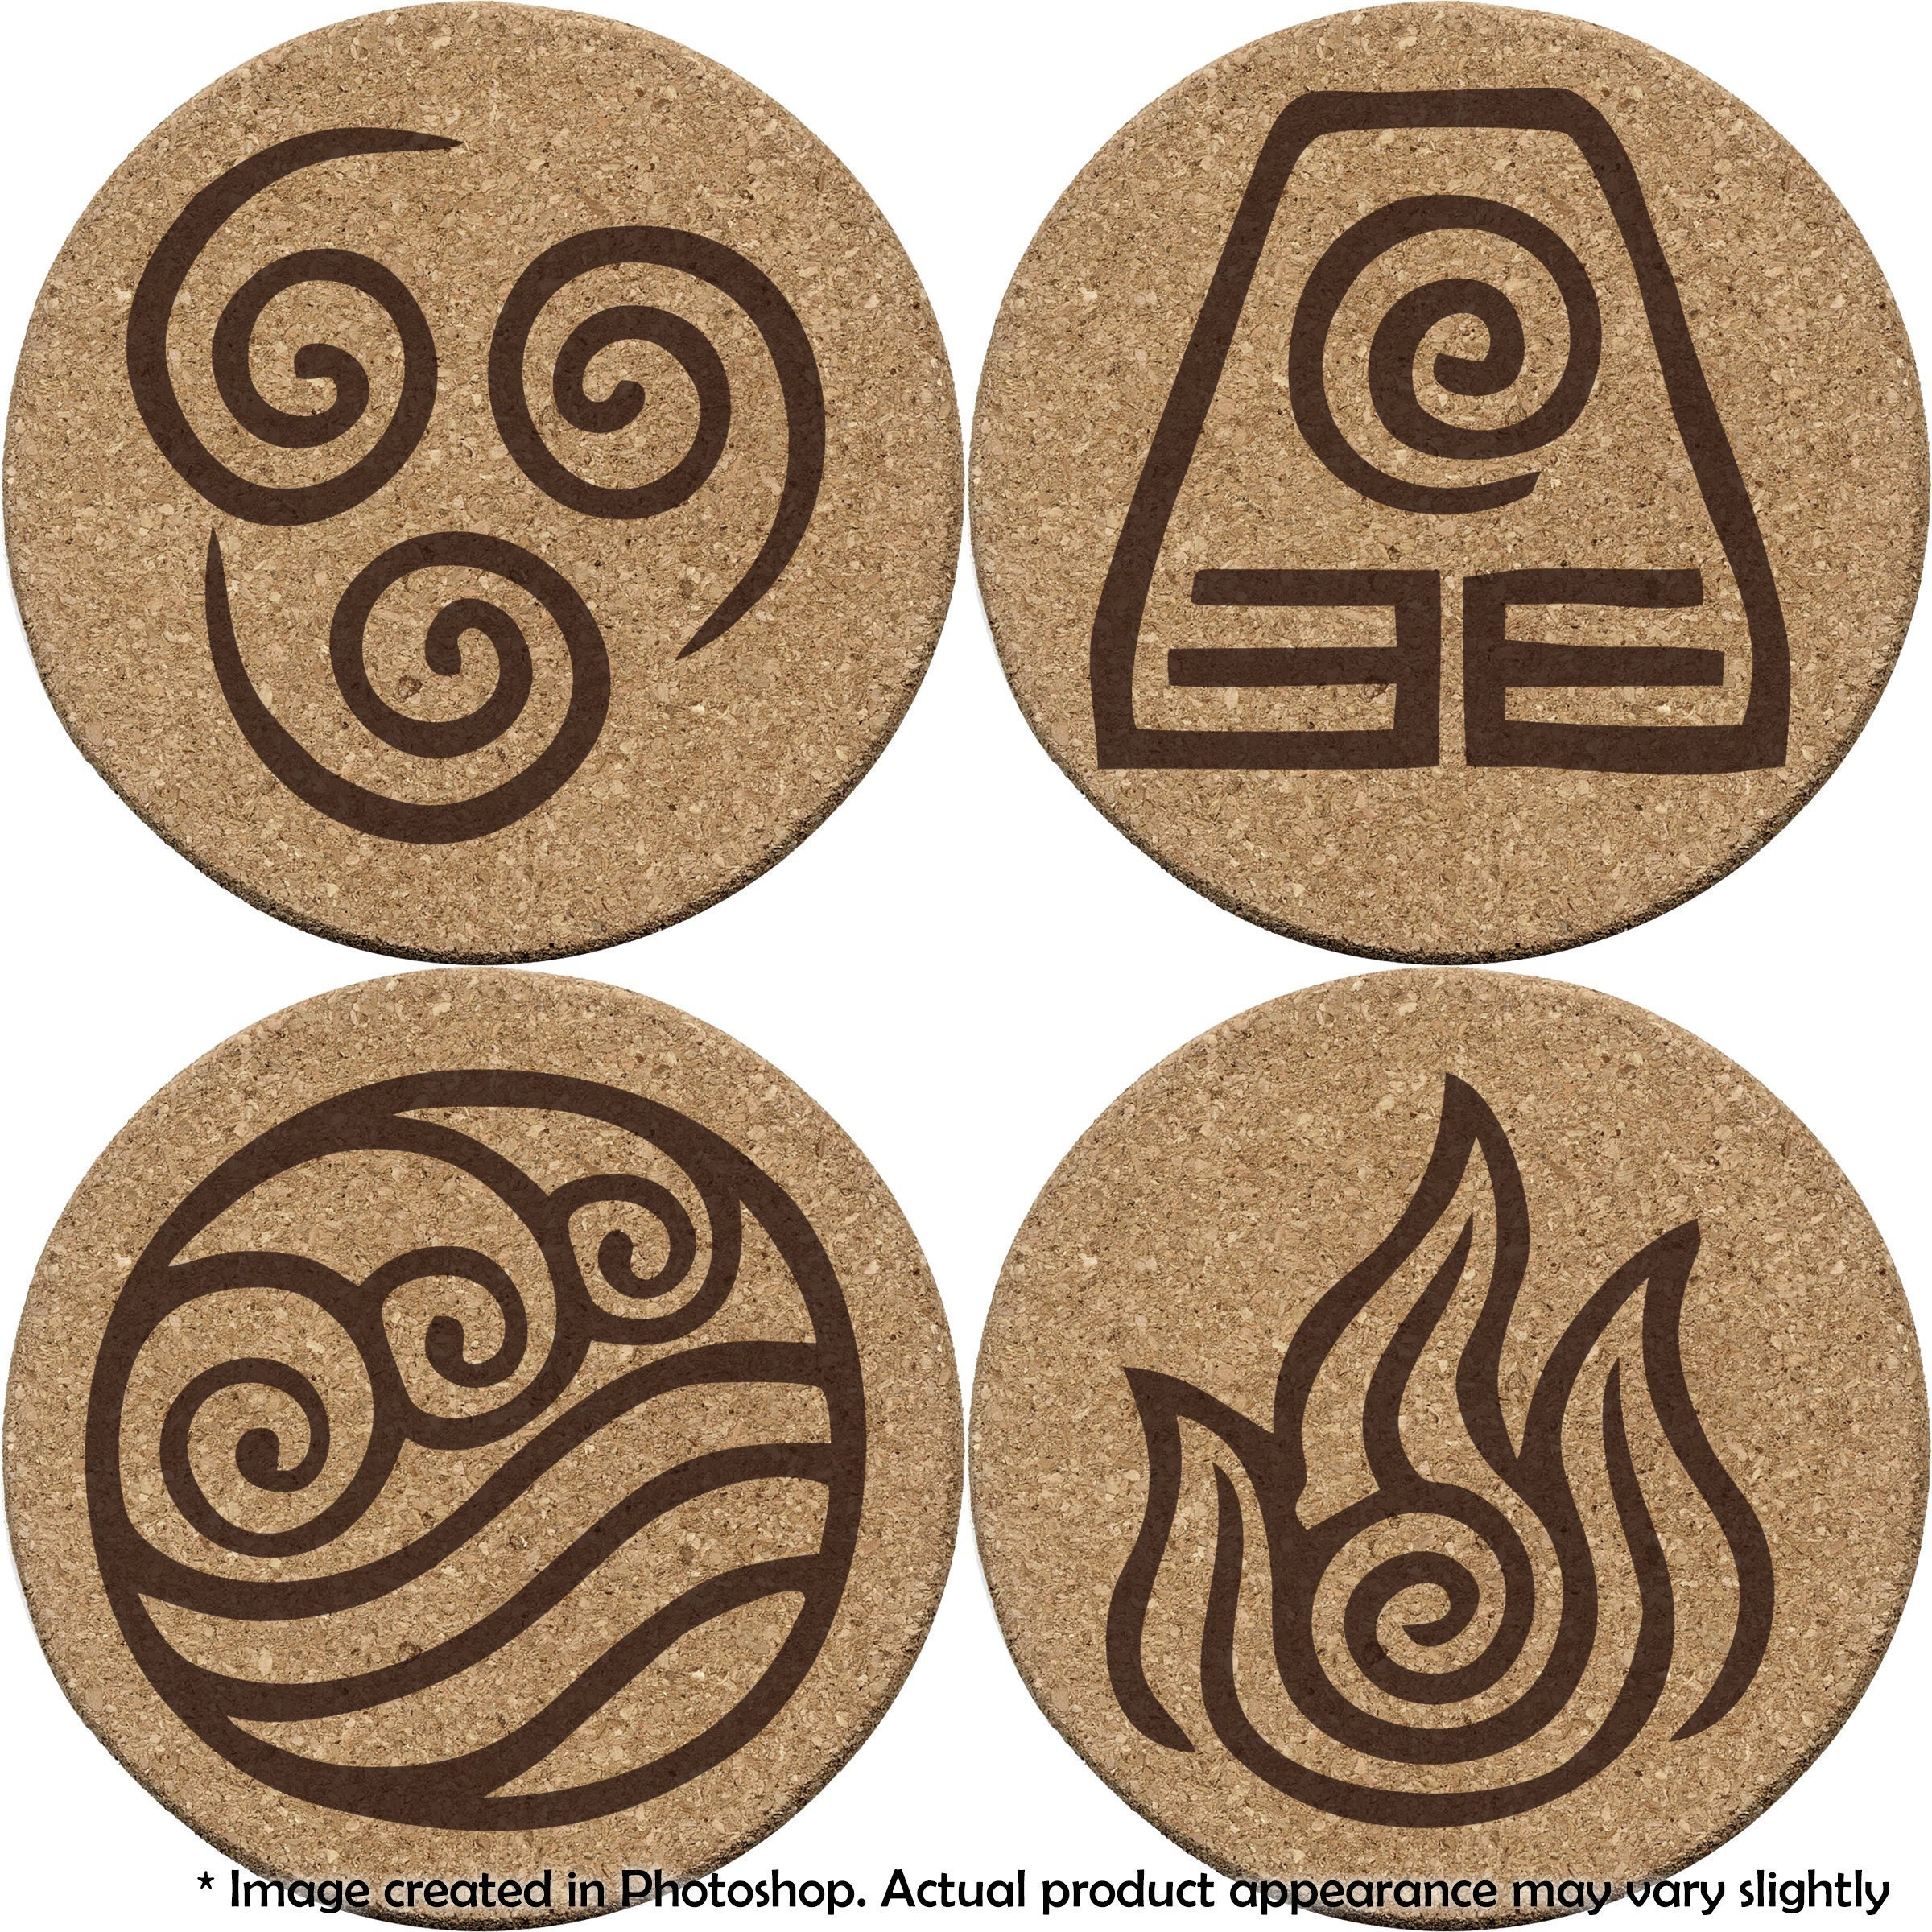 Avatar: The Last Airbender 4 Coaster Set Earth, Water, Air, Fire Elements and benders (Double Sided)